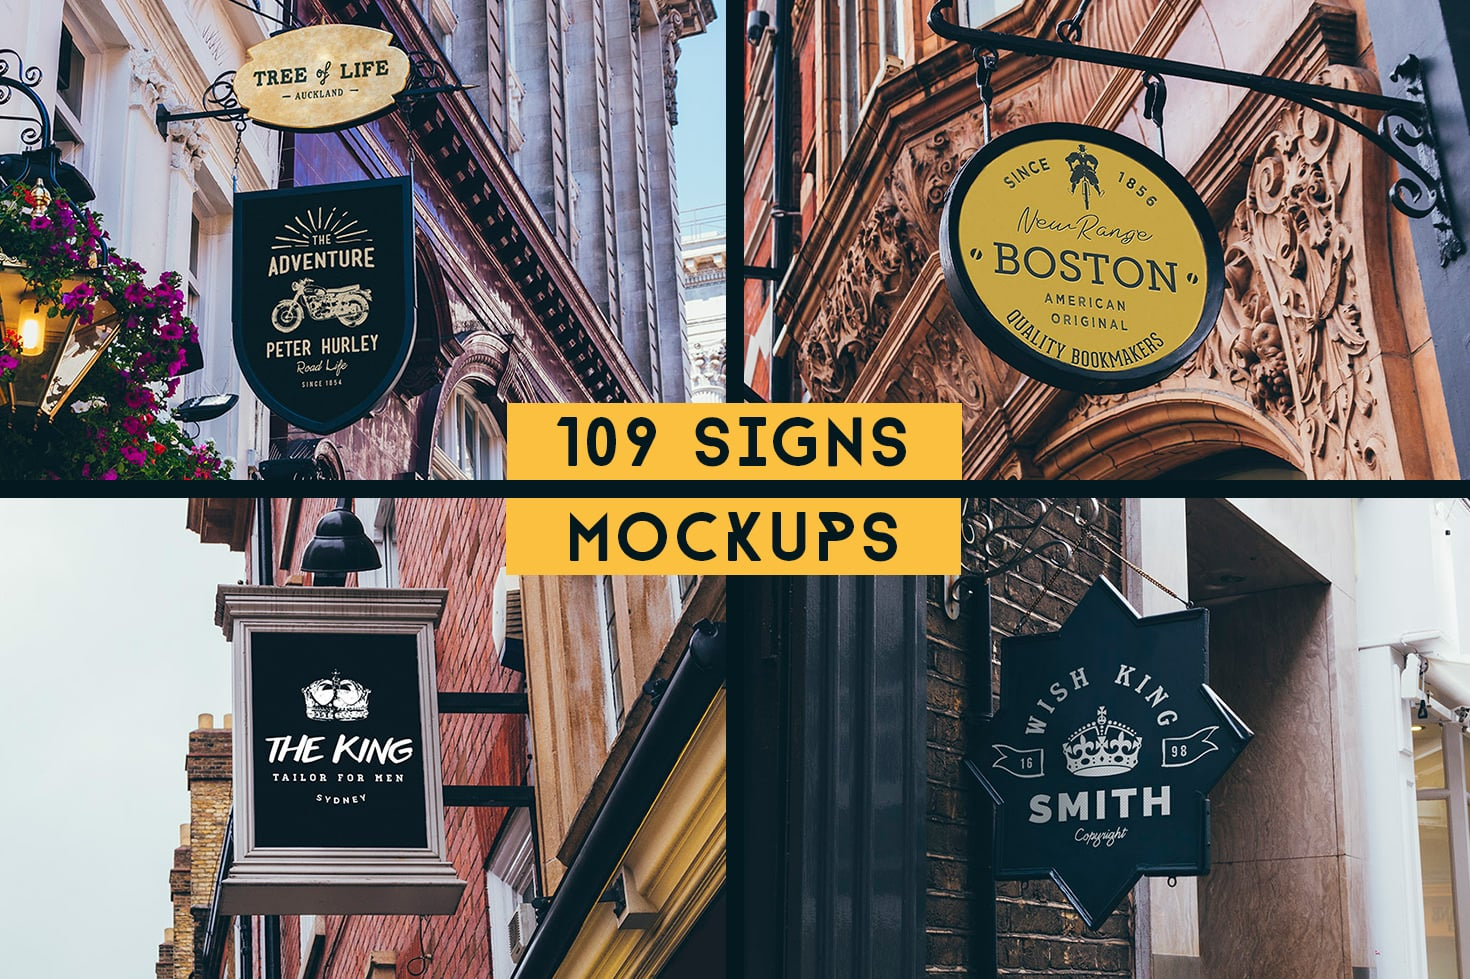 Street Sign Mockup Collection - 117 Mockups - The Ultima Sign Collection Page 2